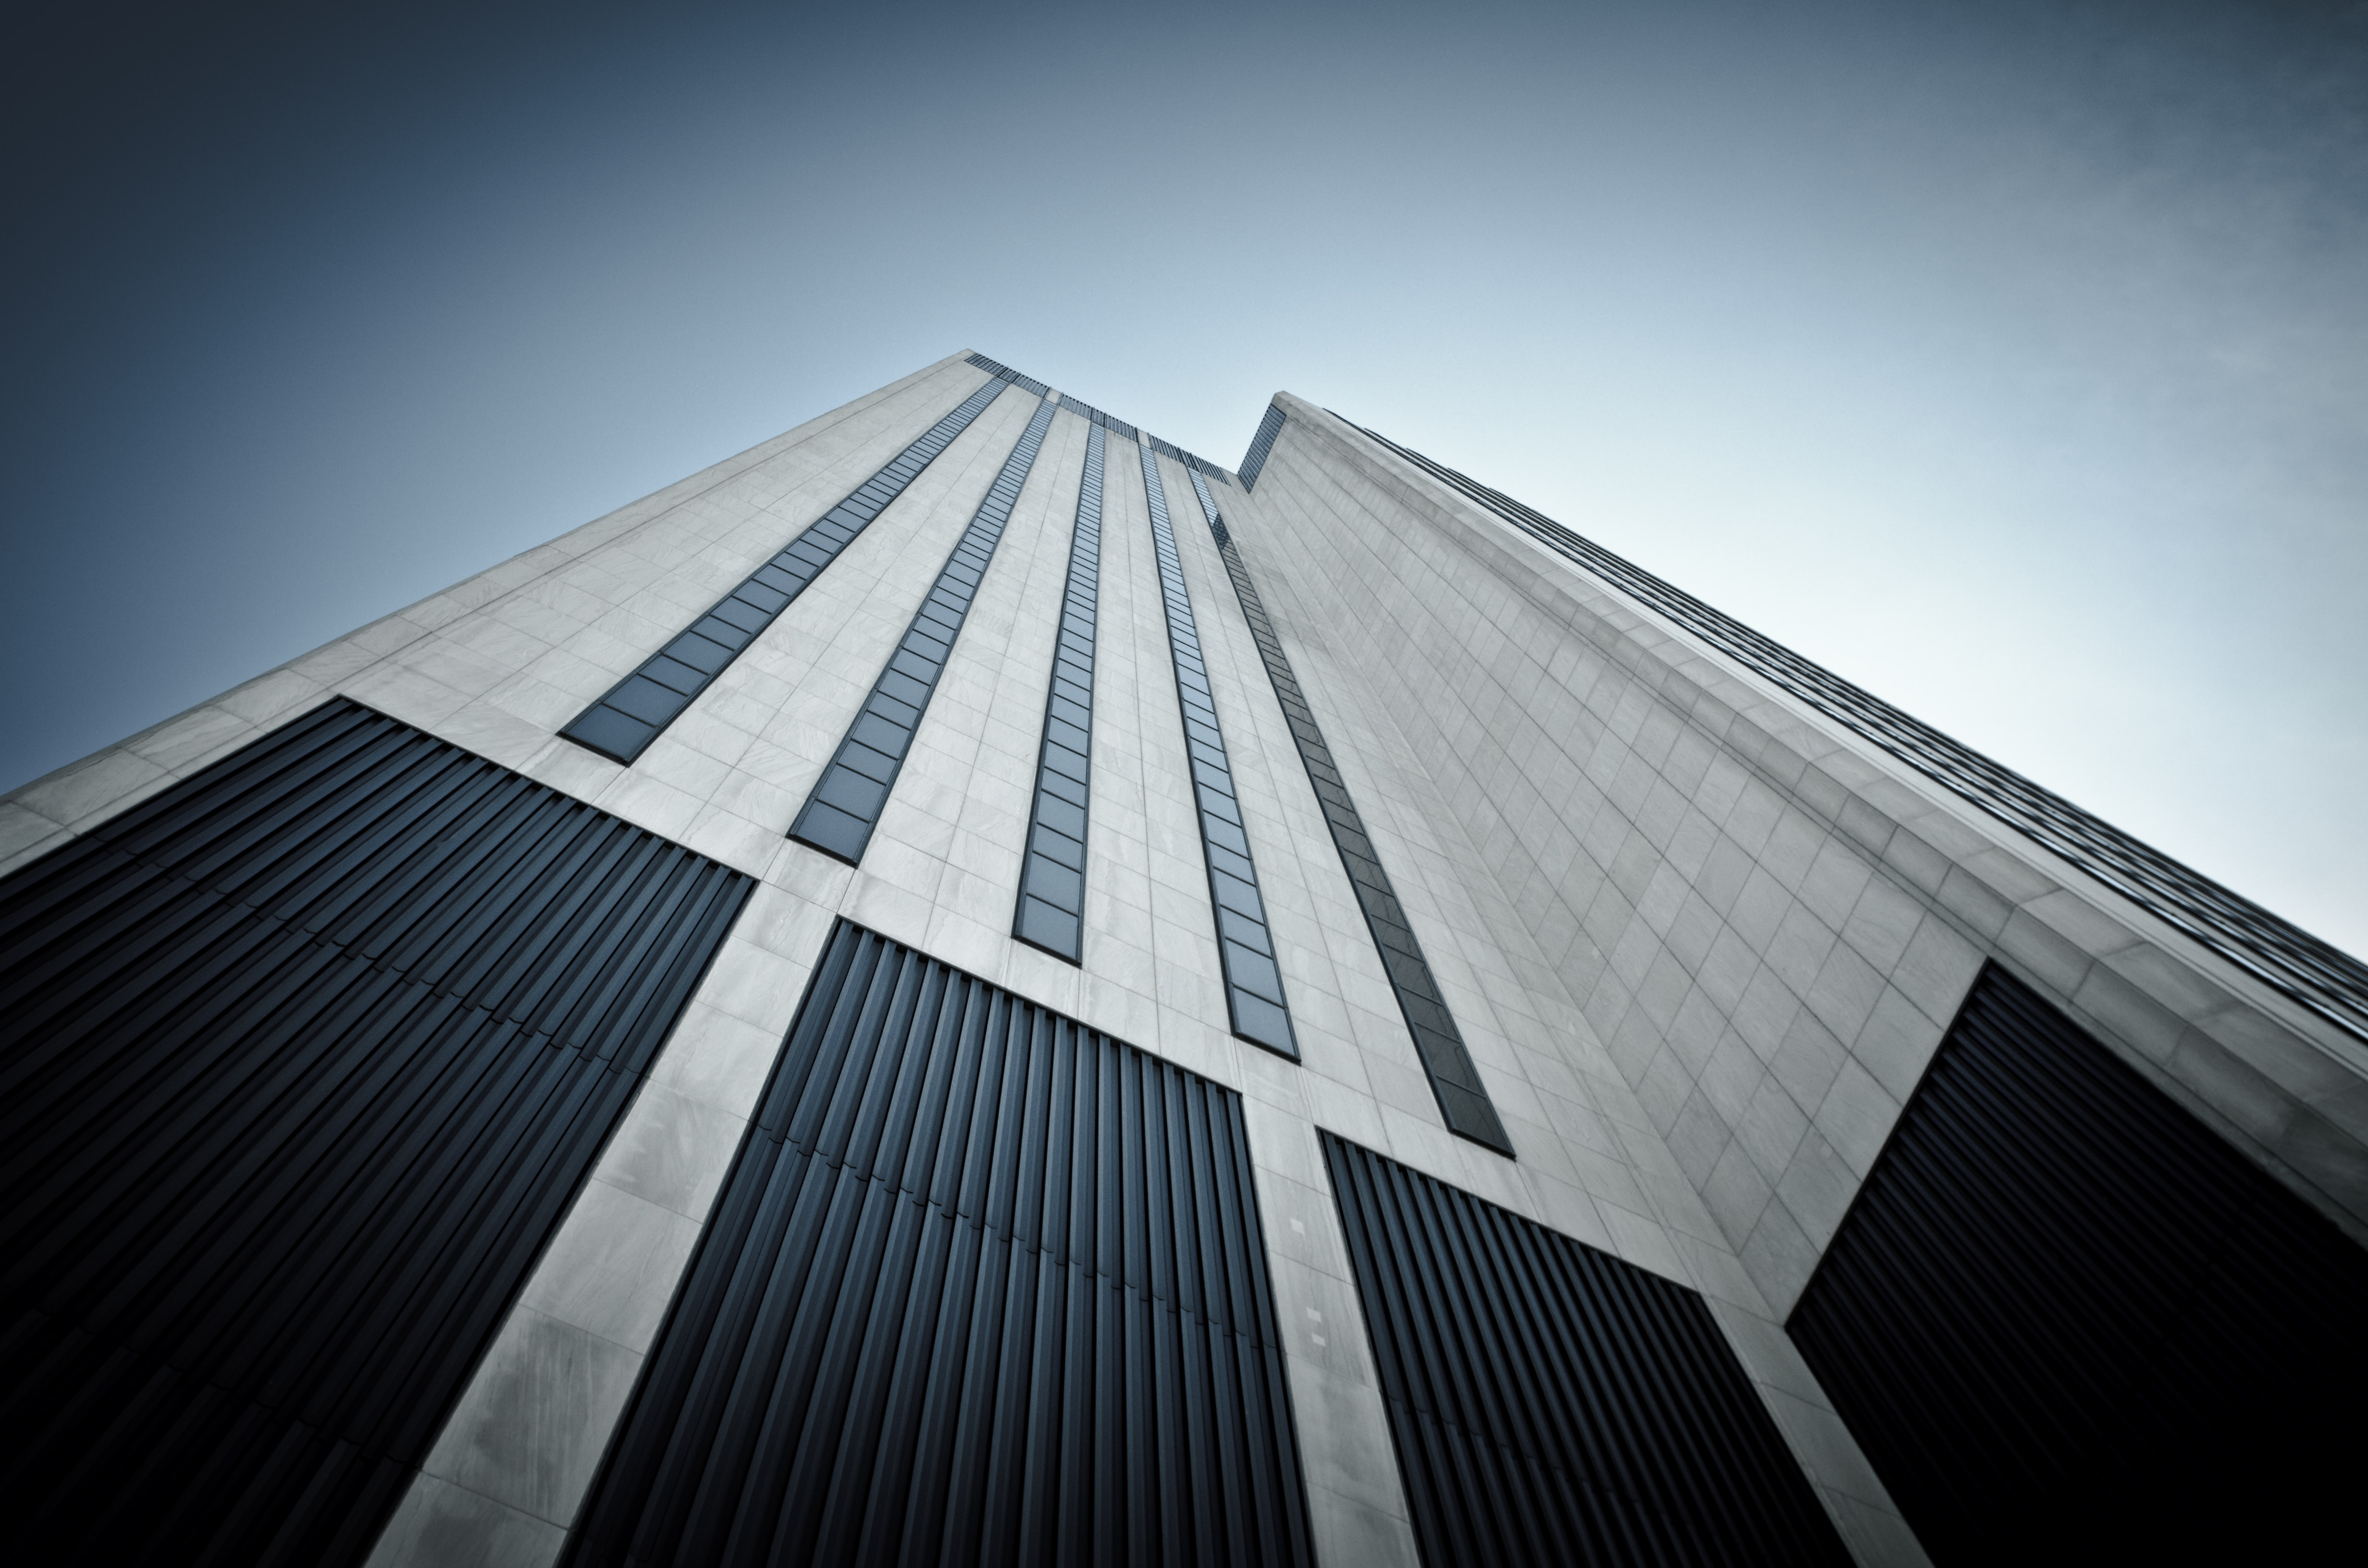 worm's eyeview of white and black concrete building